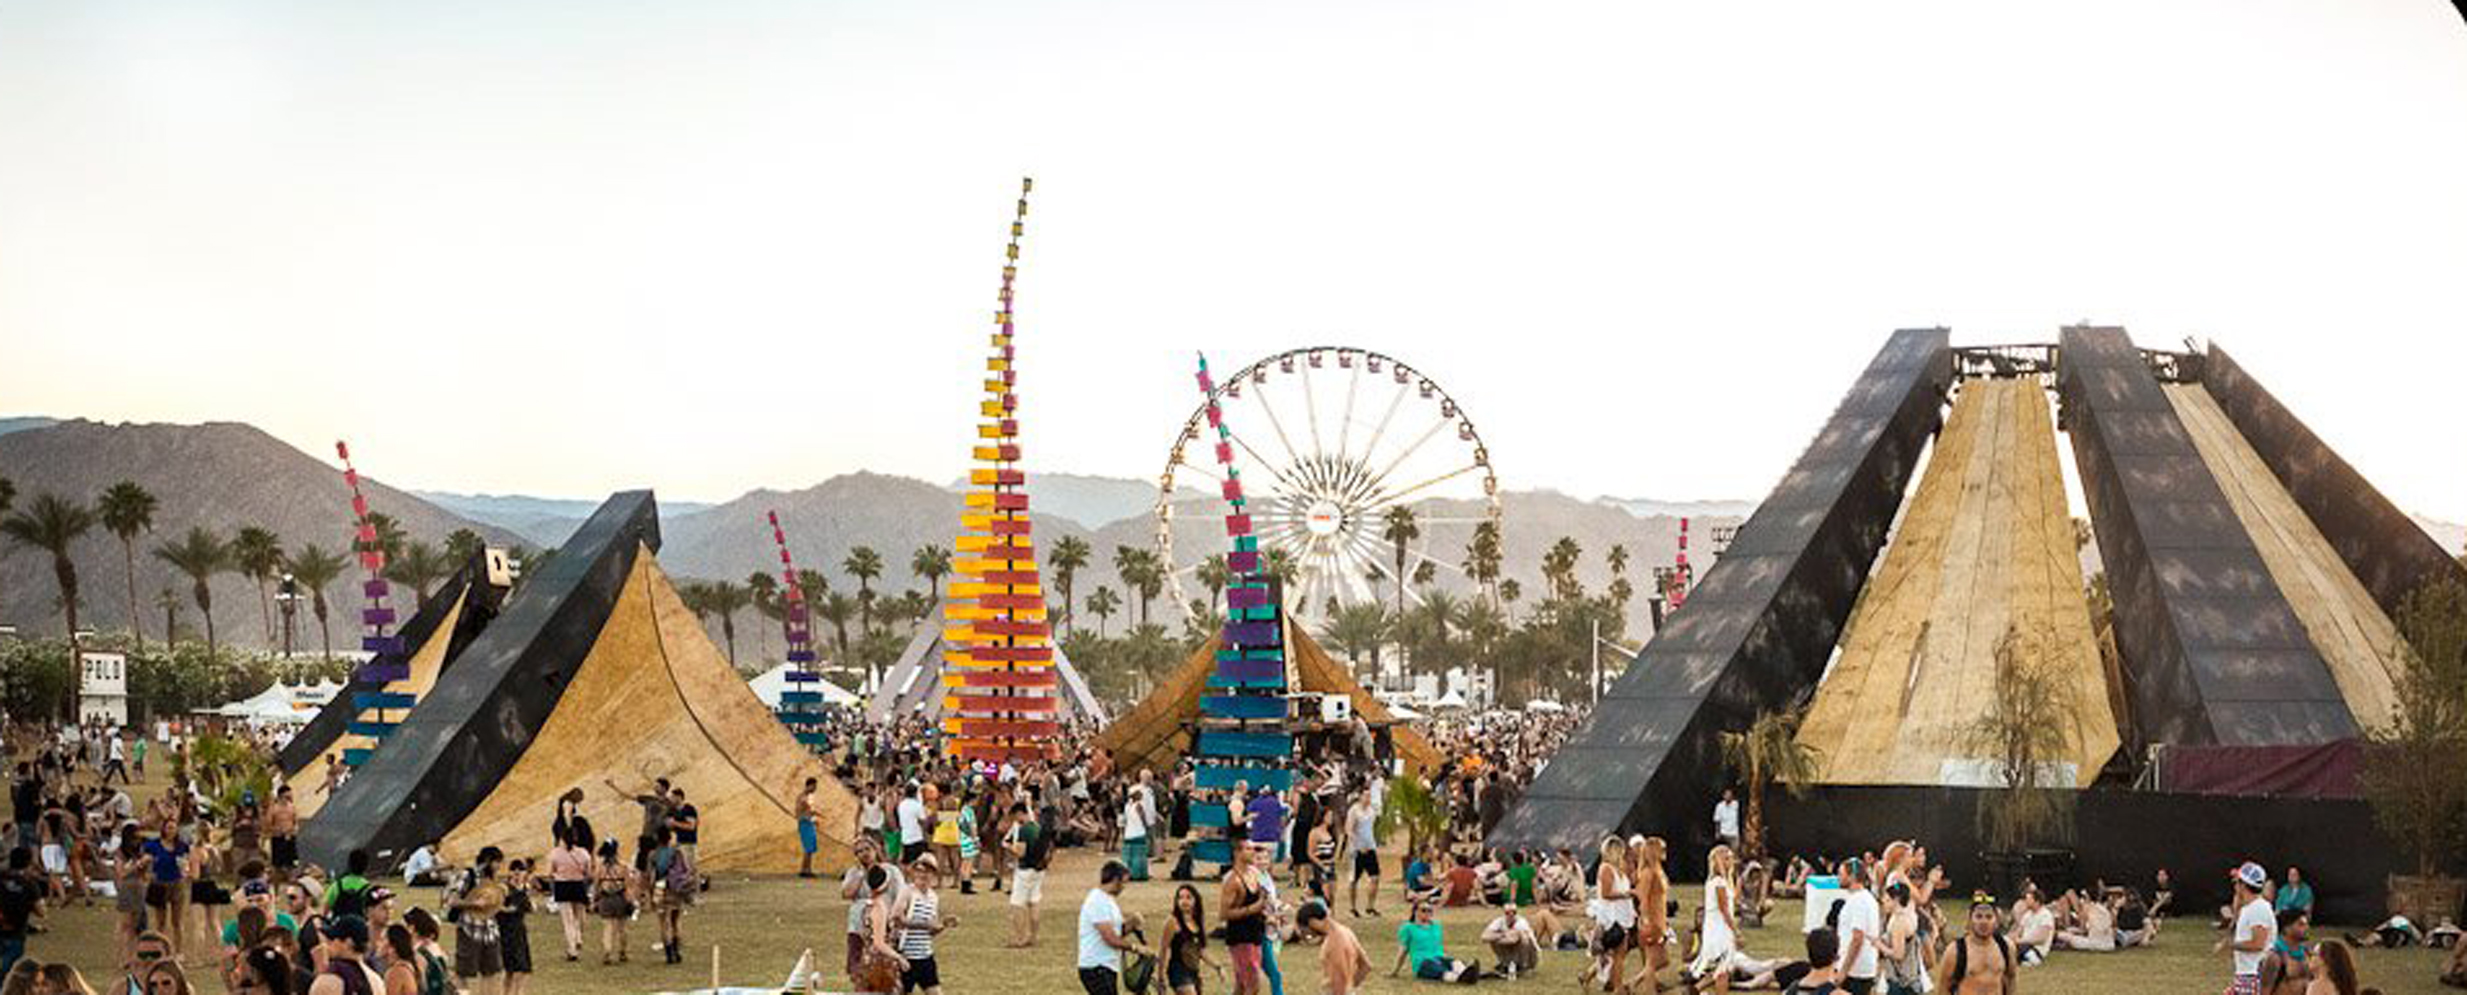 The DoLaB at Coachella 2012